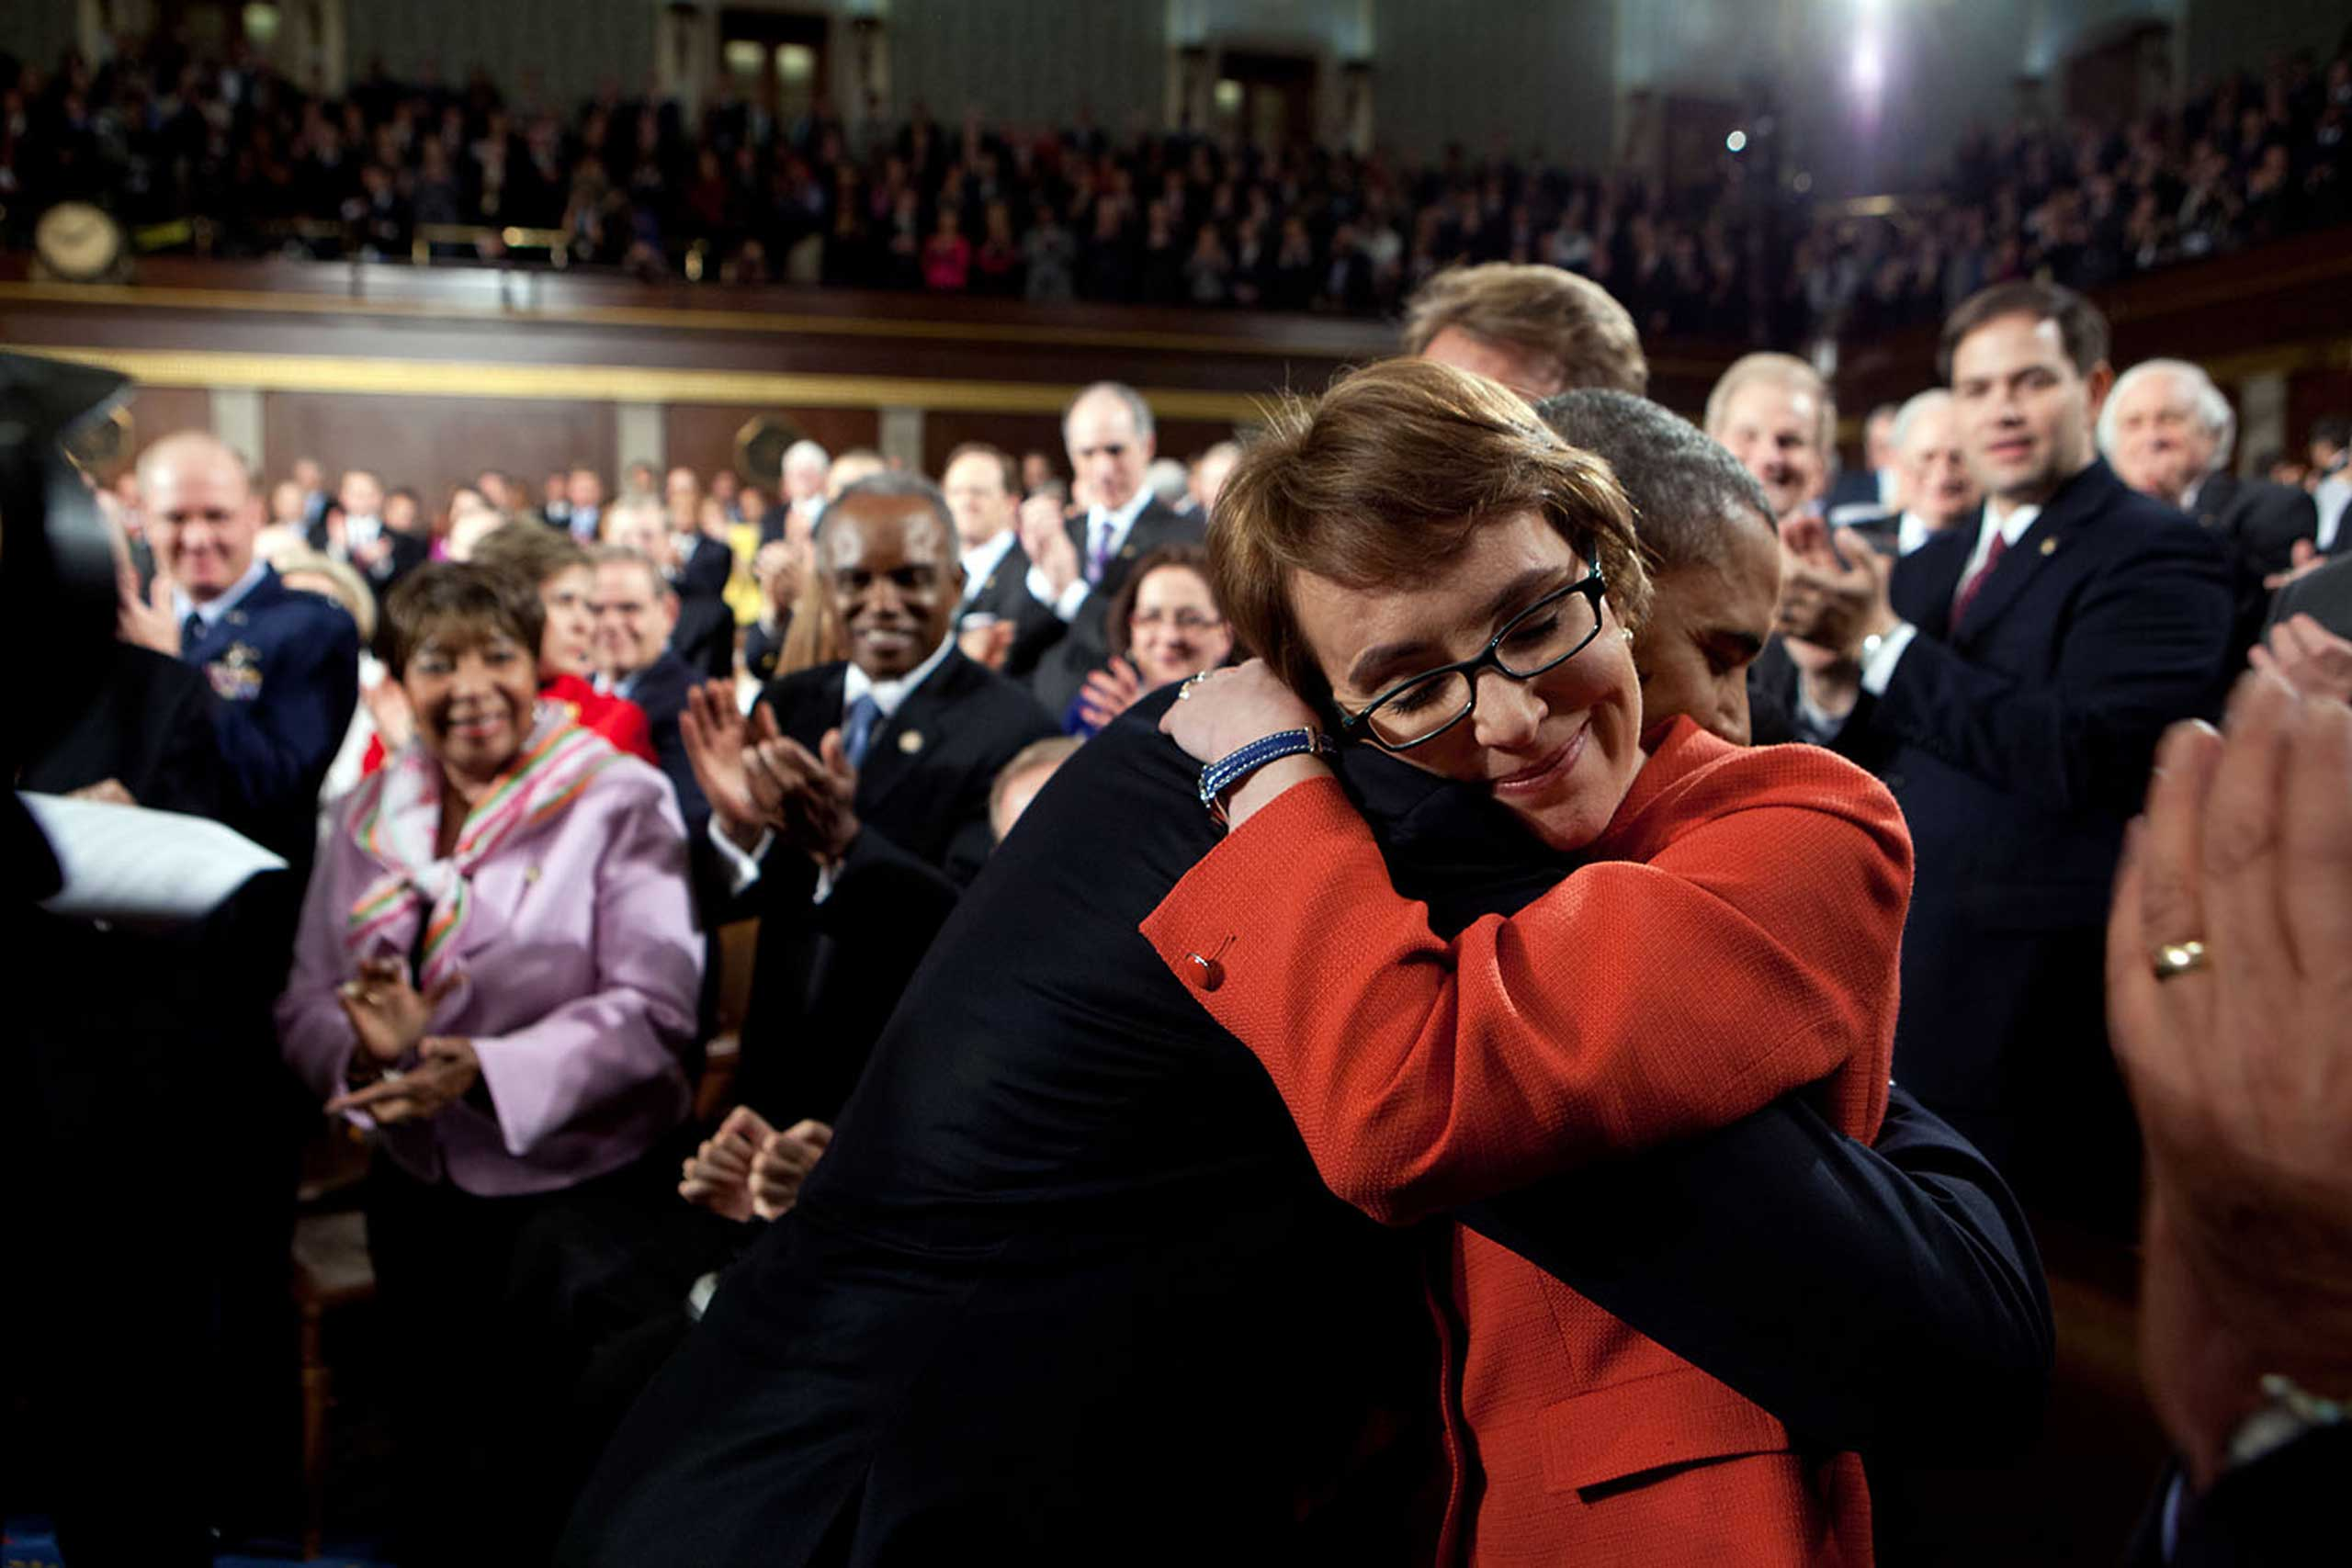 President Barack Obama greets then Rep. Gabrielle Giffords, D-Ariz., as he arrives to deliver the State of the Union address in the House Chamber at the U.S. Capitol in Washington, D.C., Jan. 24, 2012.